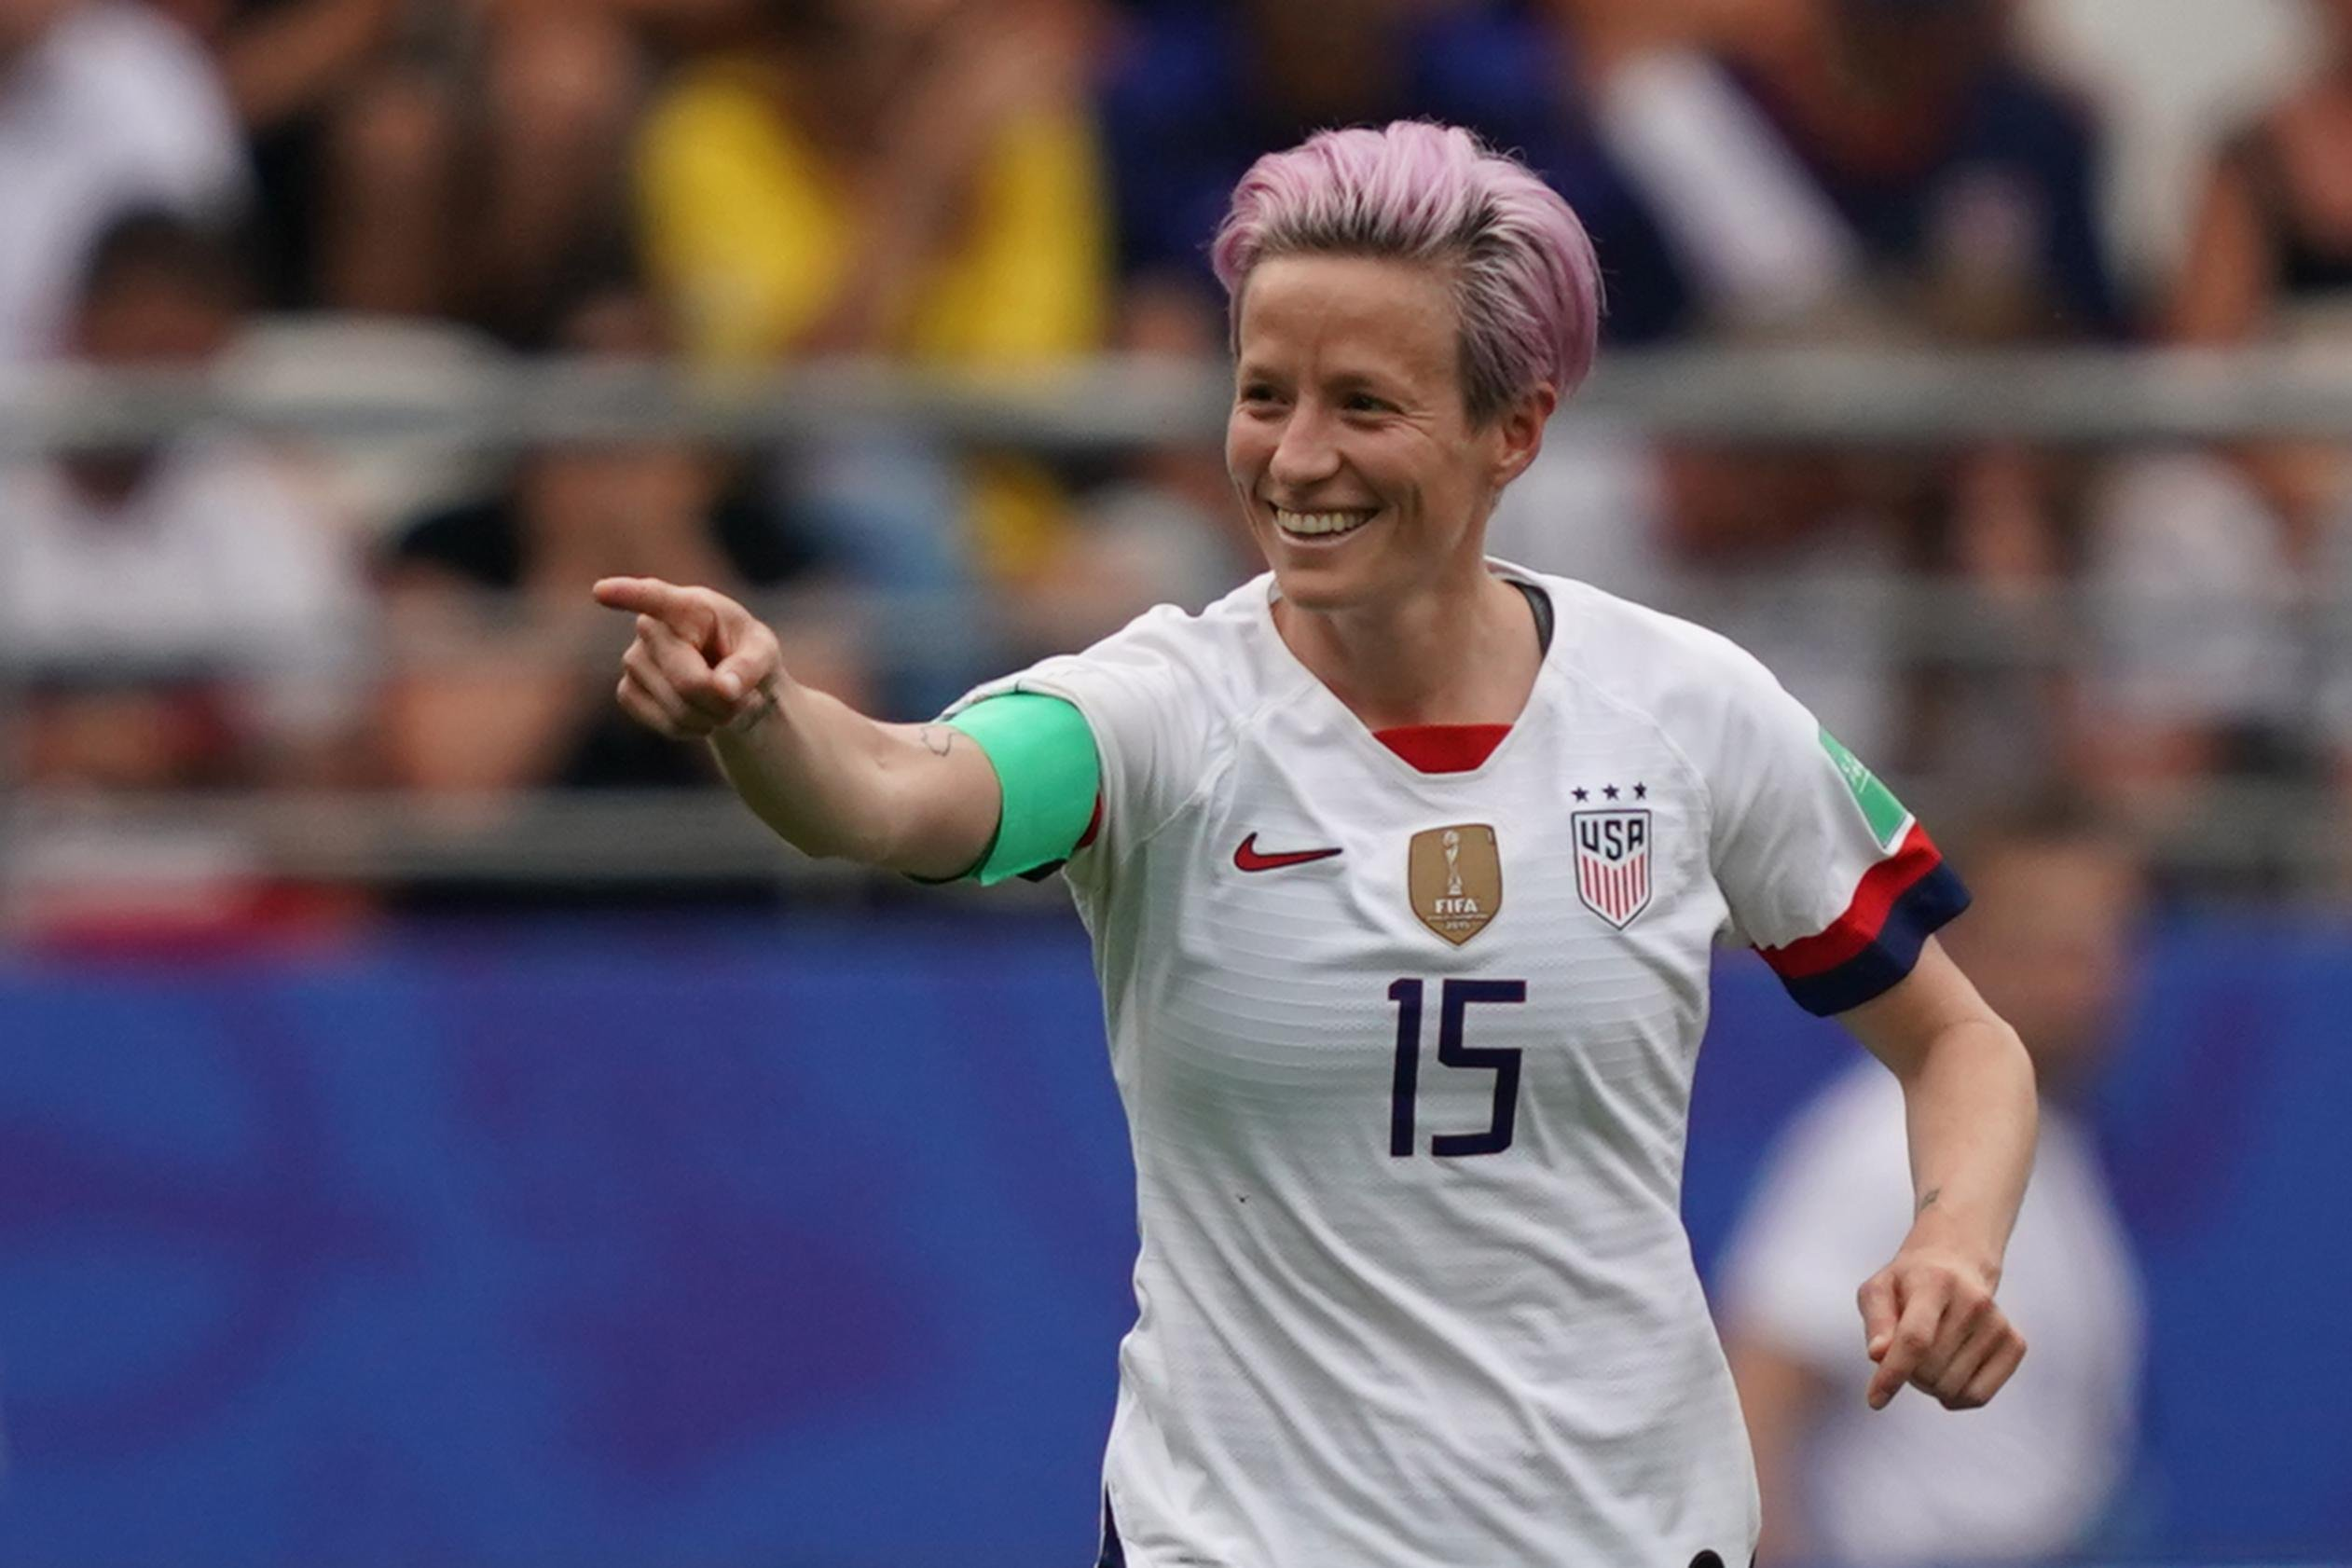 Trump: Soccer star Megan Rapinoe 'should WIN first' before declining WH invitation, says he will invite them 'win or lose'